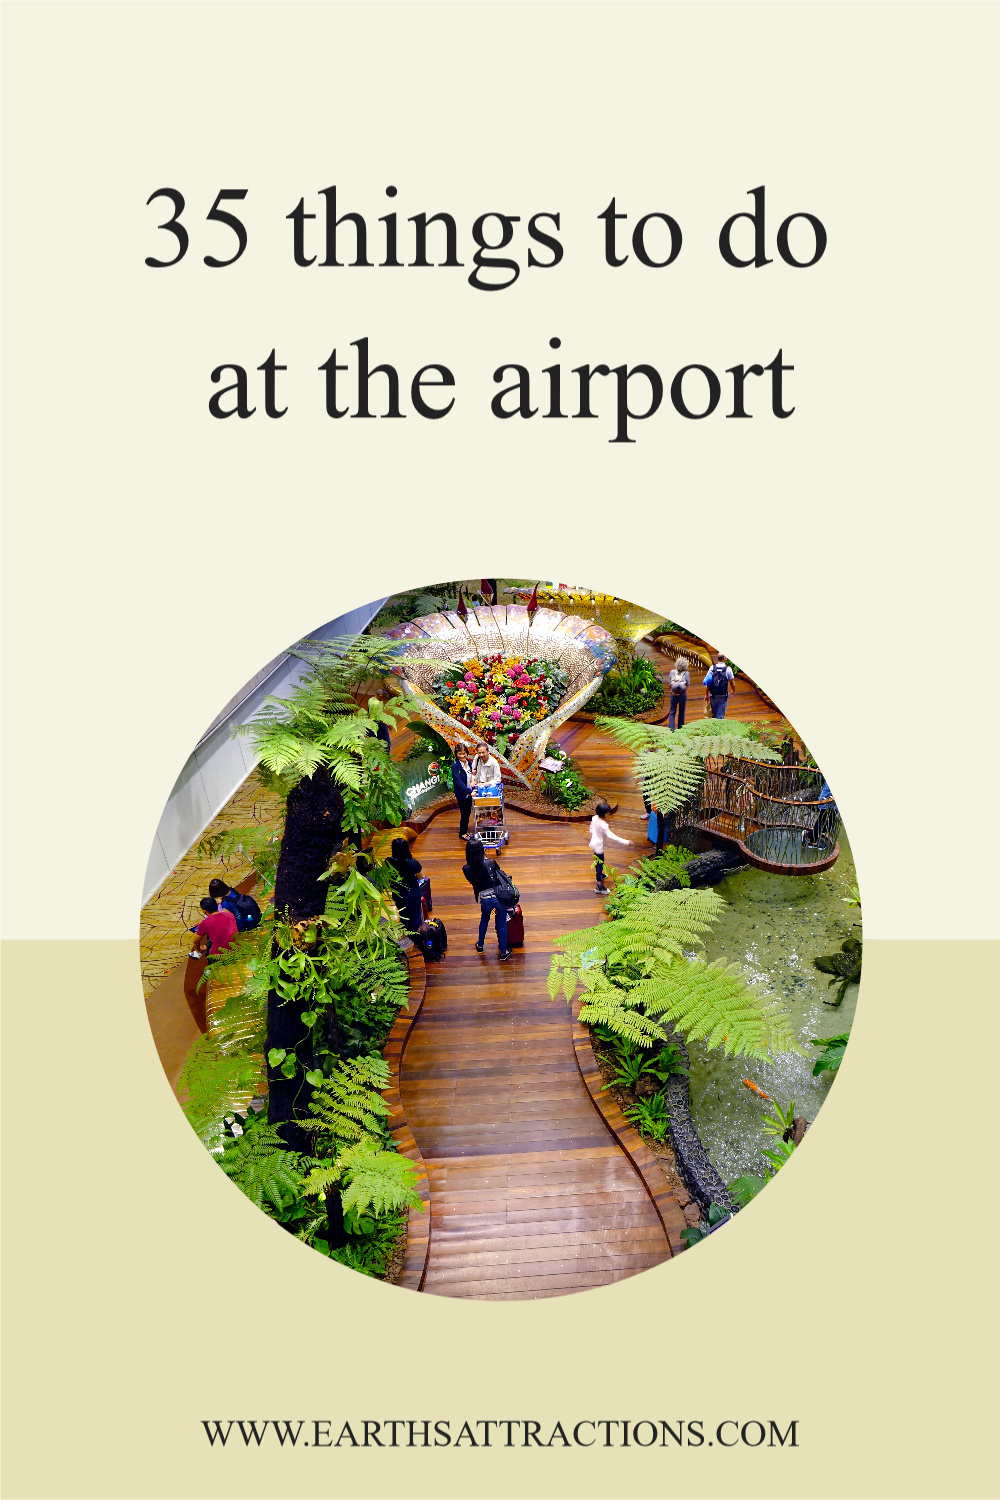 35 things to at the airport. Wondering what to do before boarding your plane? Here are the best things to do before your flight! #travel #airport #airportactivities #airportthingstodo #traveltips #earthsattractions